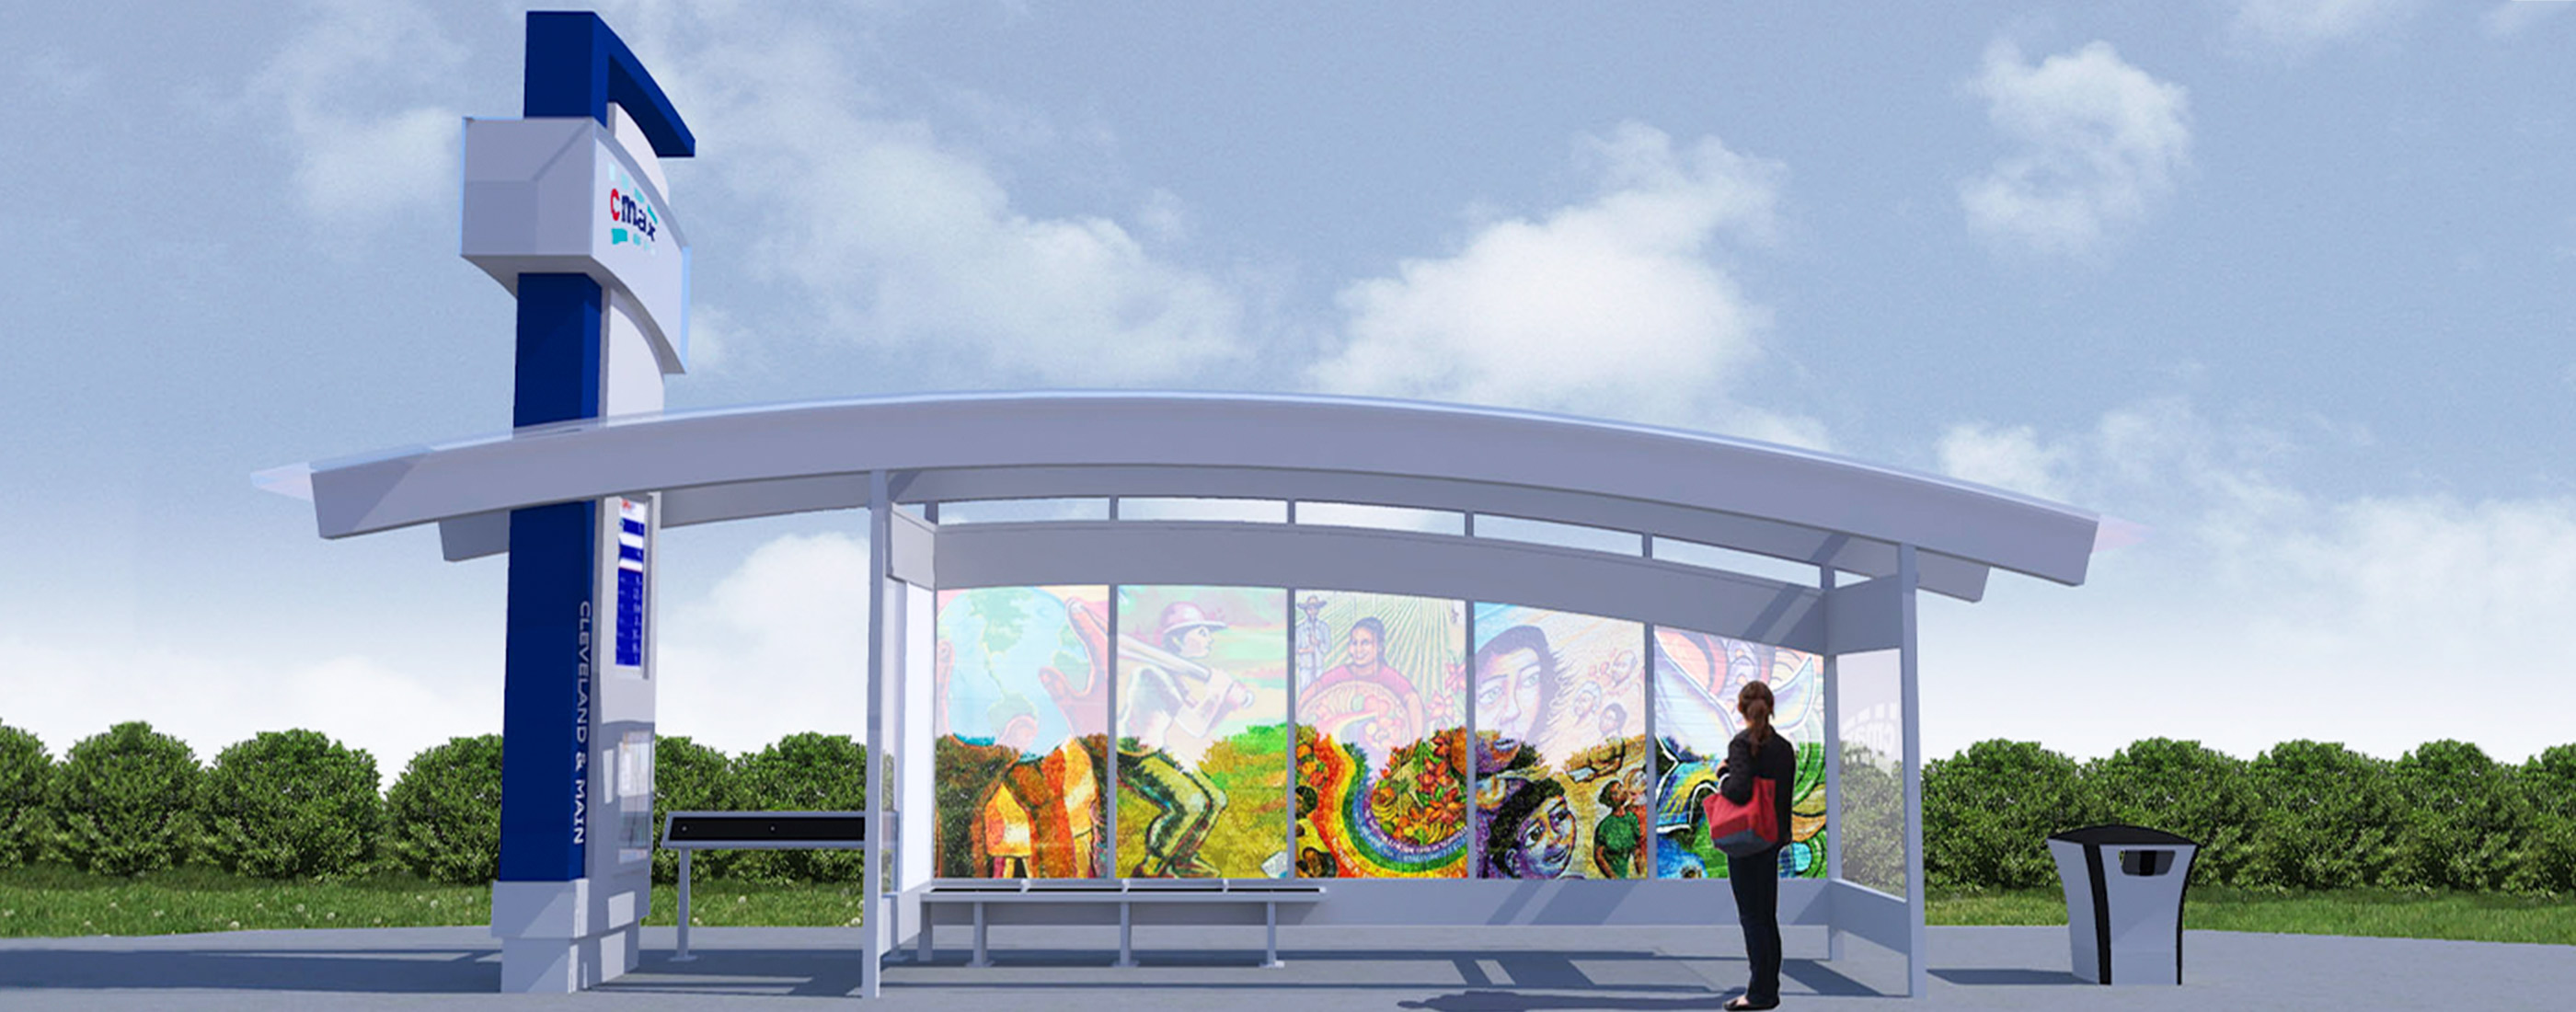 A rendering of local artwork at one of the CMAX stations.